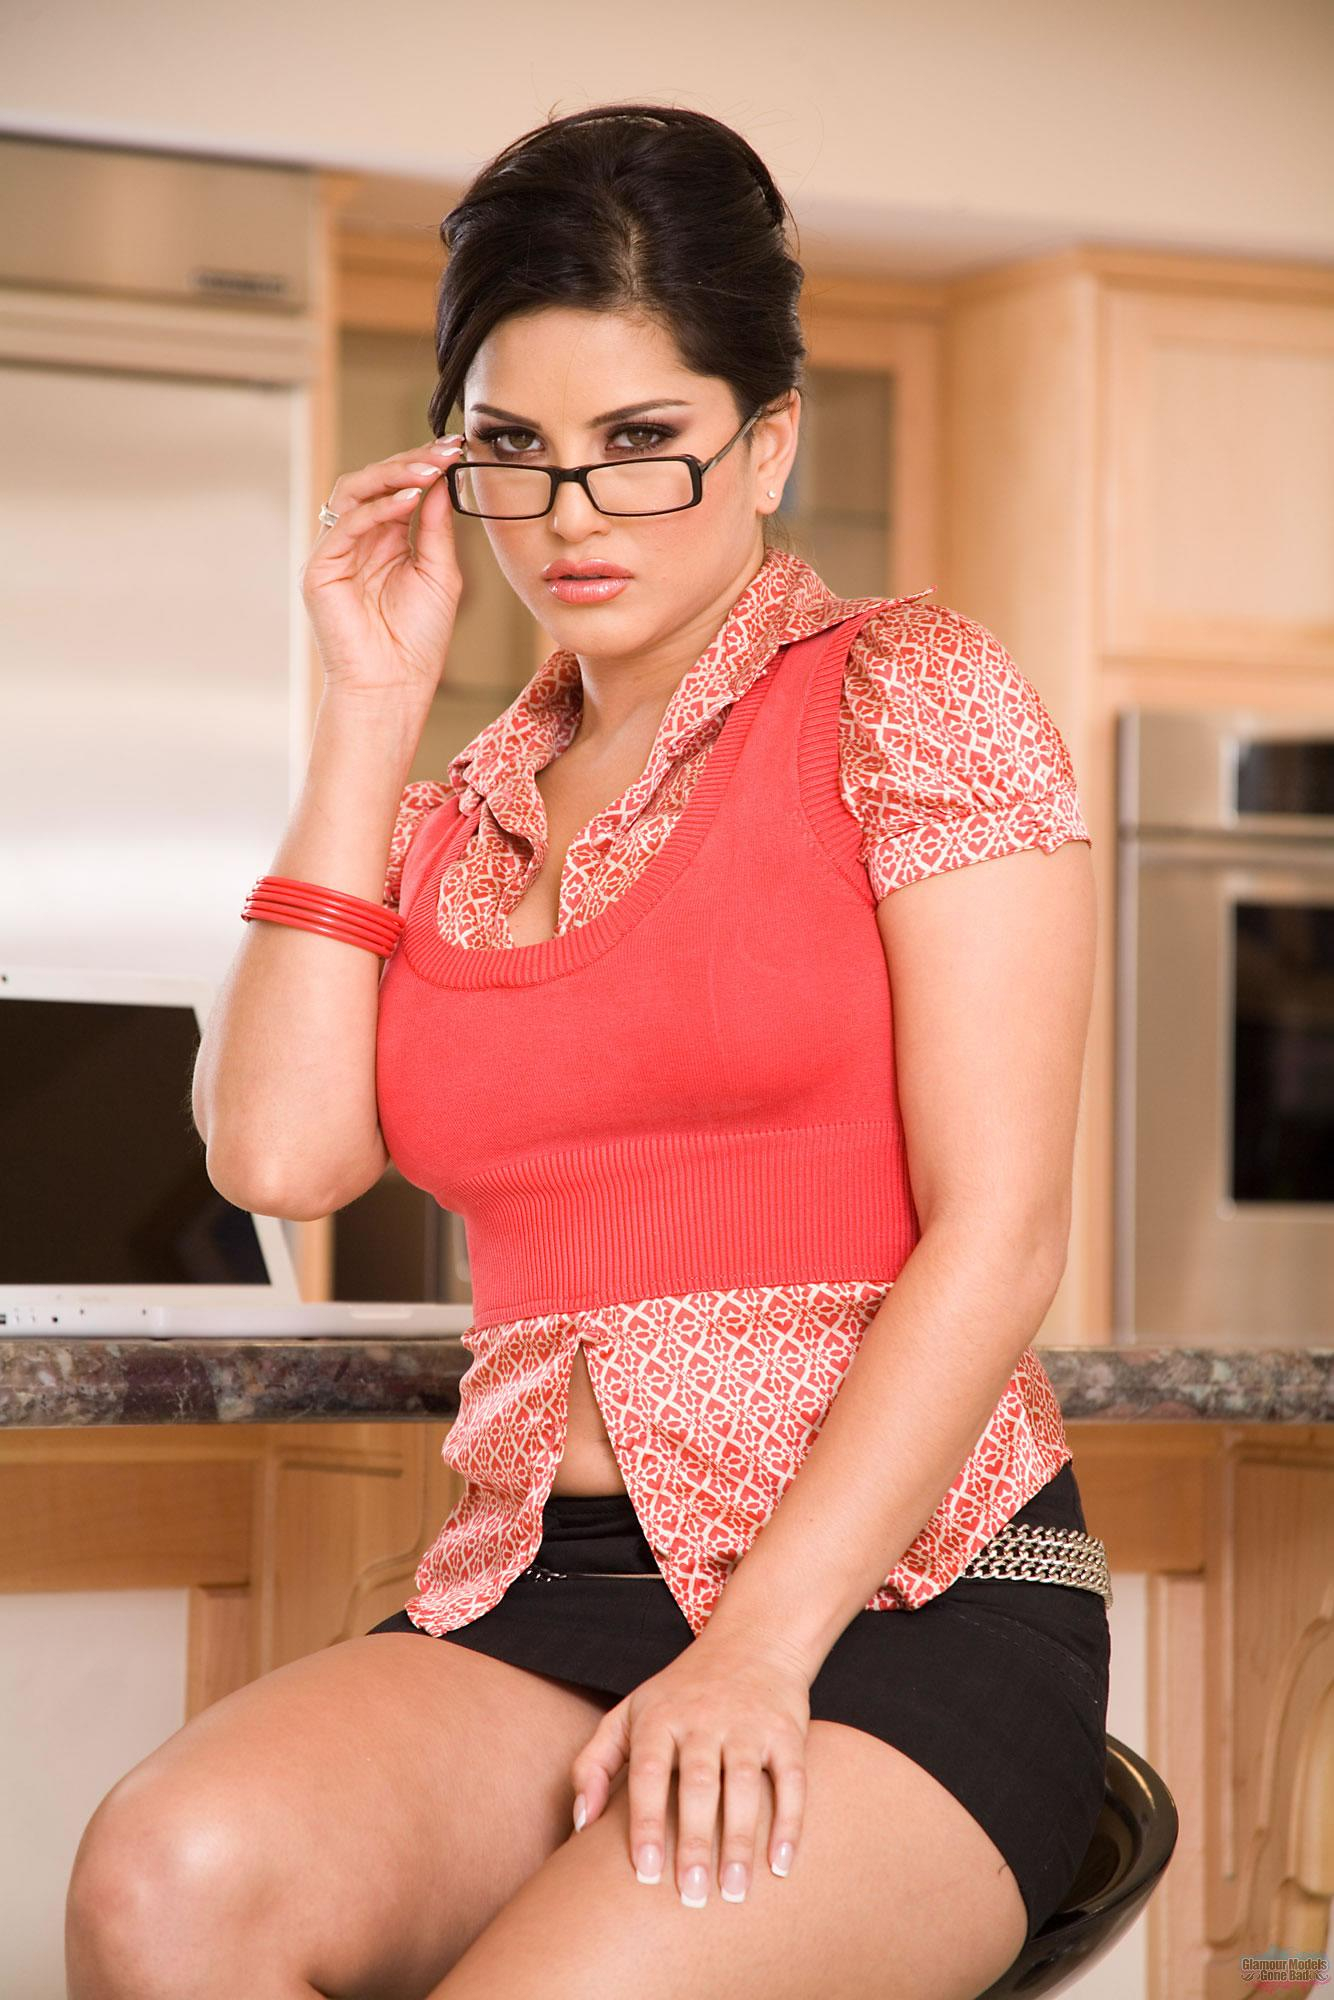 Sultry brunette with big tits Sea J Raw fucking on the kitchen table № 234178 загрузить